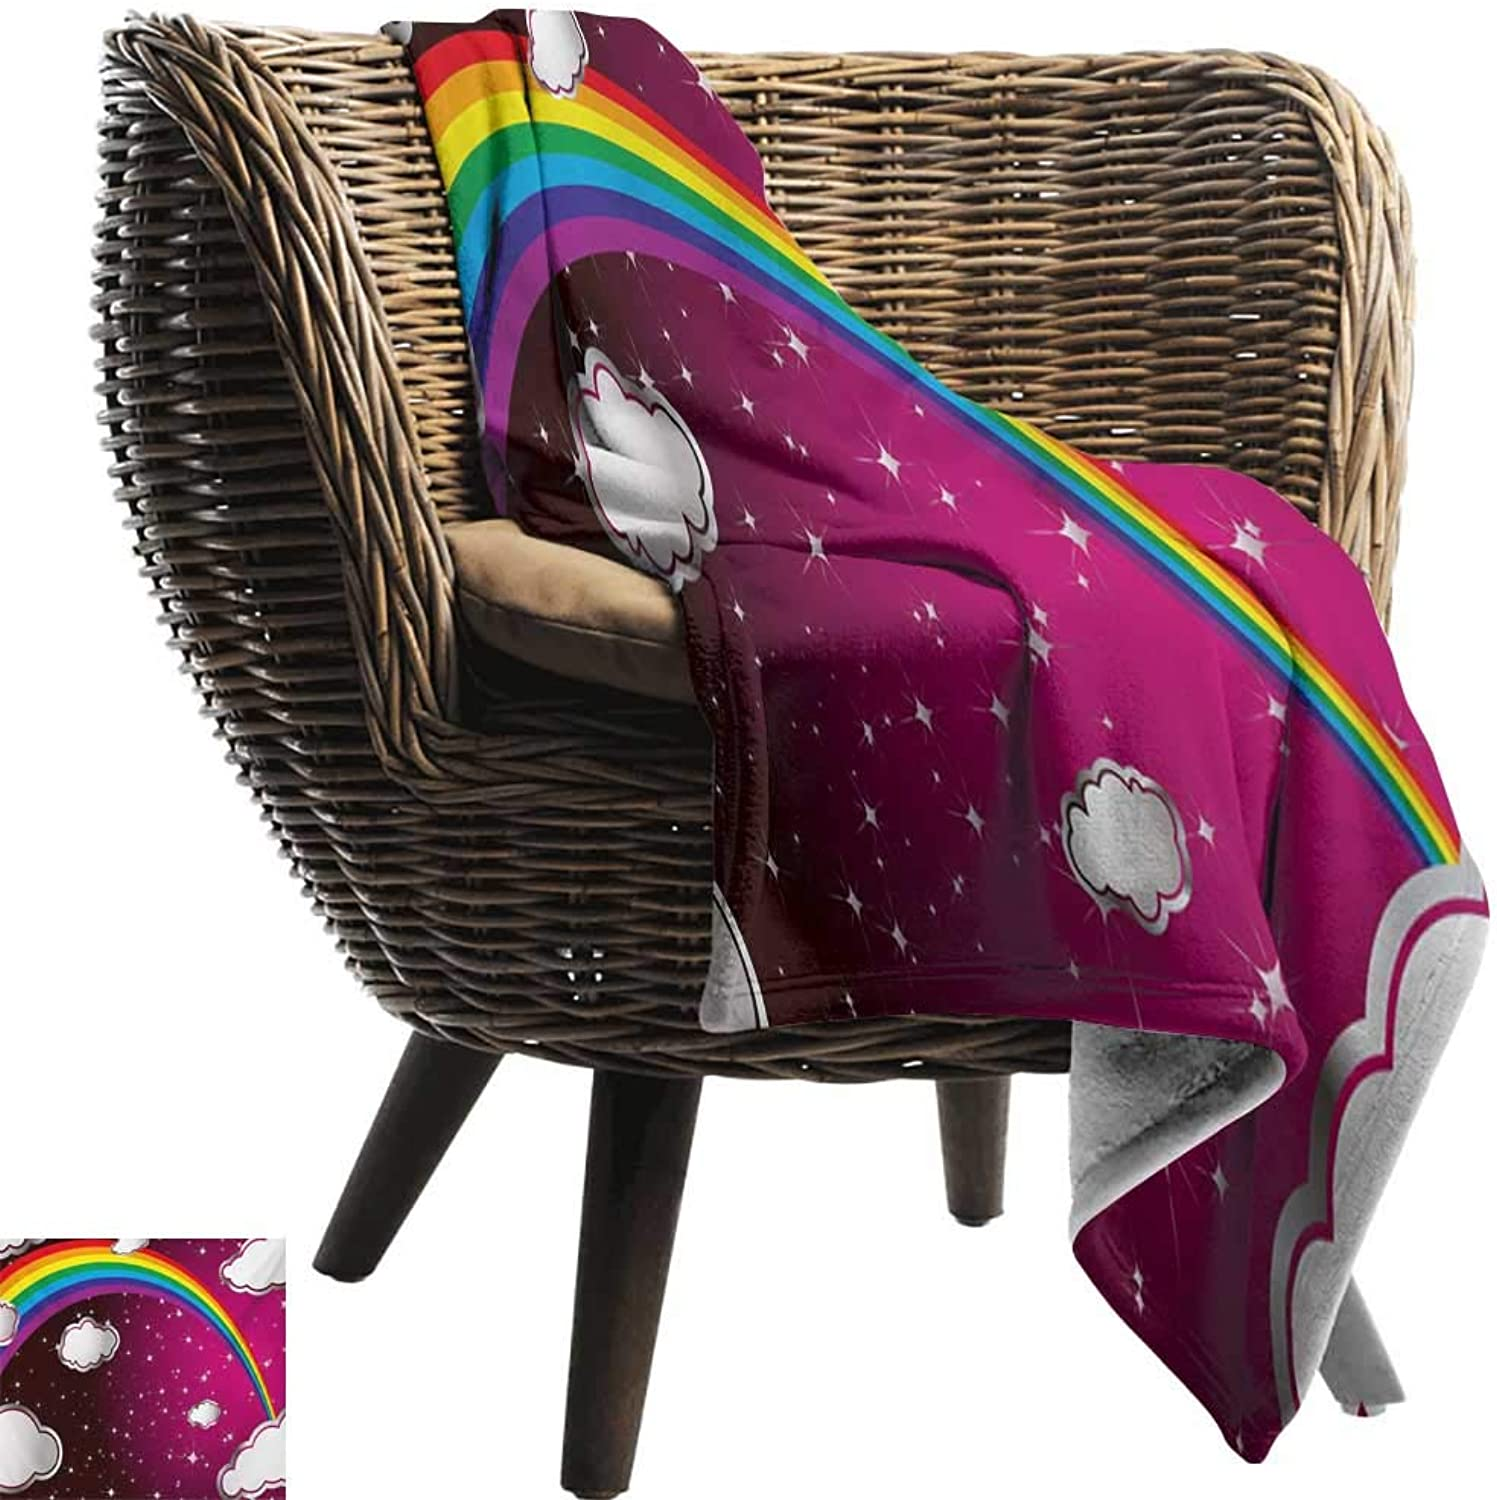 ZSUO Sofa Blanket 50 x60  Inch Cartoon,Rainbow Image with colors Star Like Details for Kids Nursery Room Artwork,Maroon and White Reversible Soft Fabric for Couch Sofa Easy Care